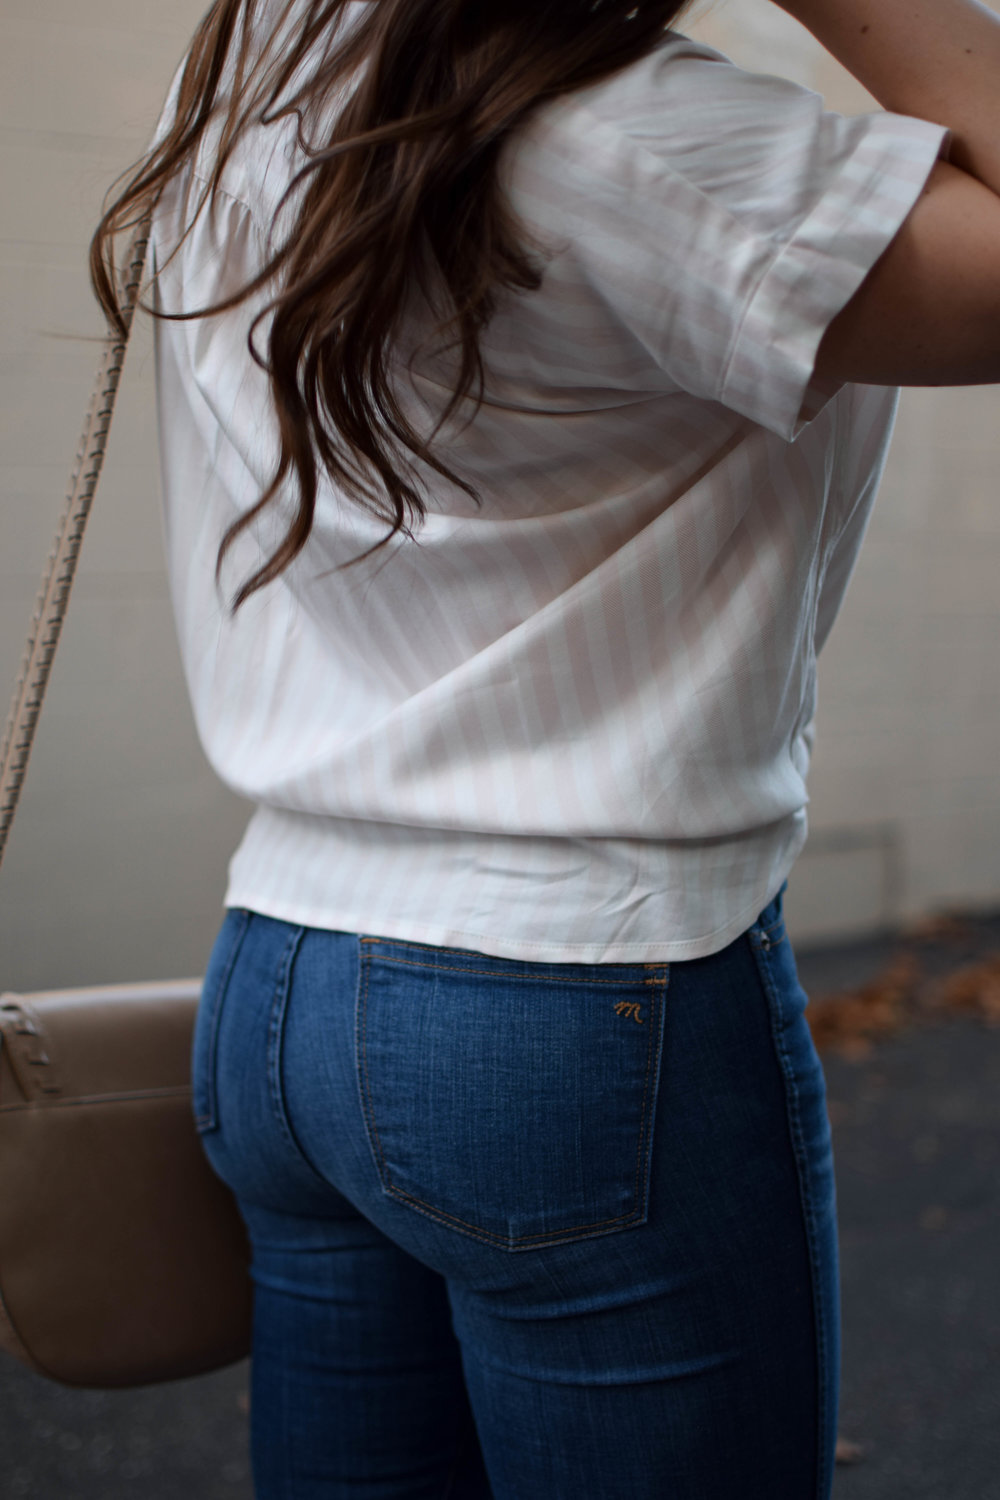 fall transition outfit idea / fall outfit idea / fall outfit inspiration / madewell striped button up / madewell high rise denim